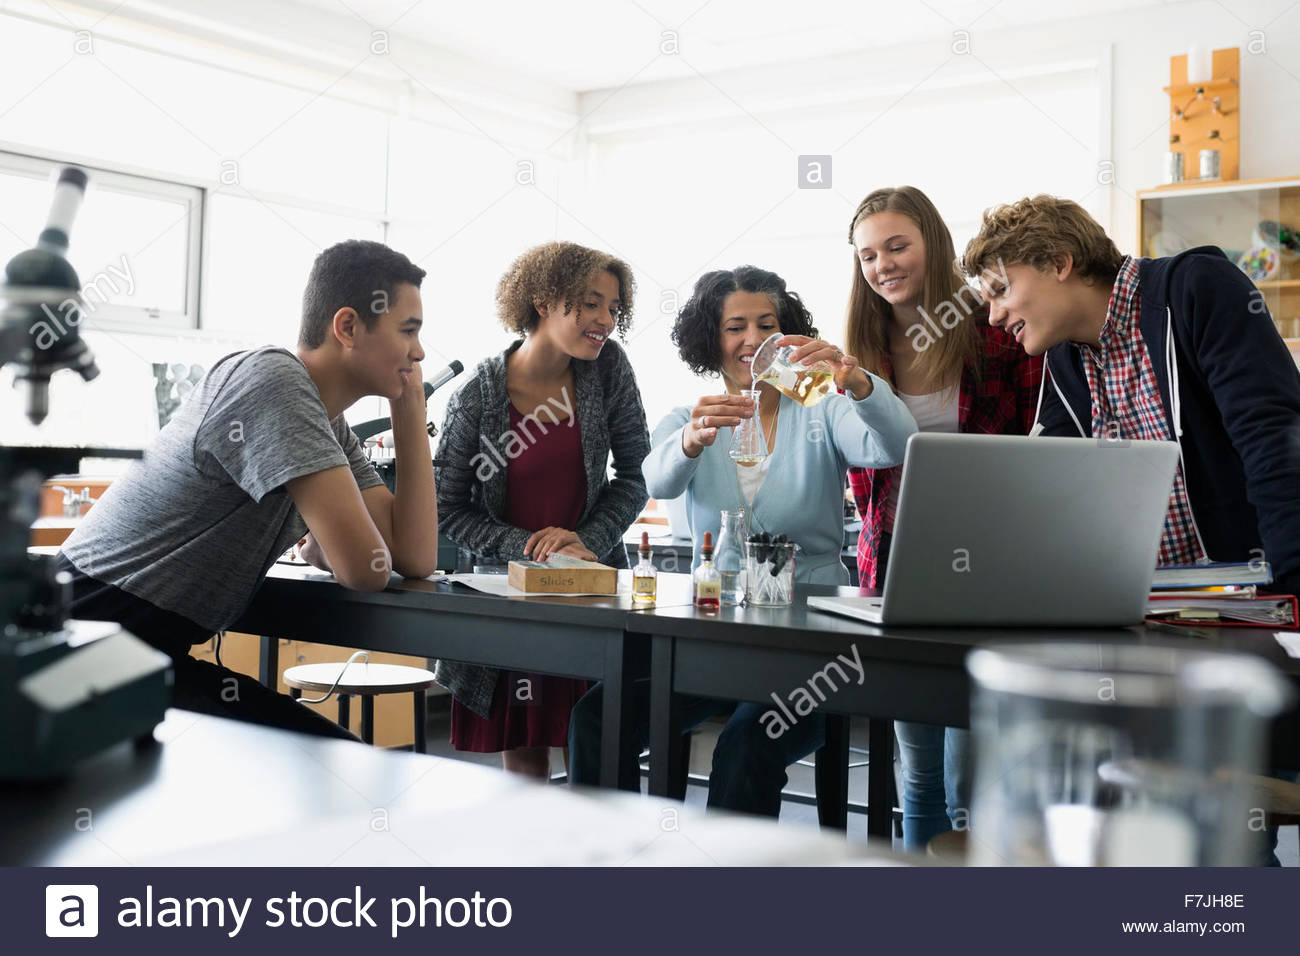 High school students and teacher conducting scientific experiment - Stock Image